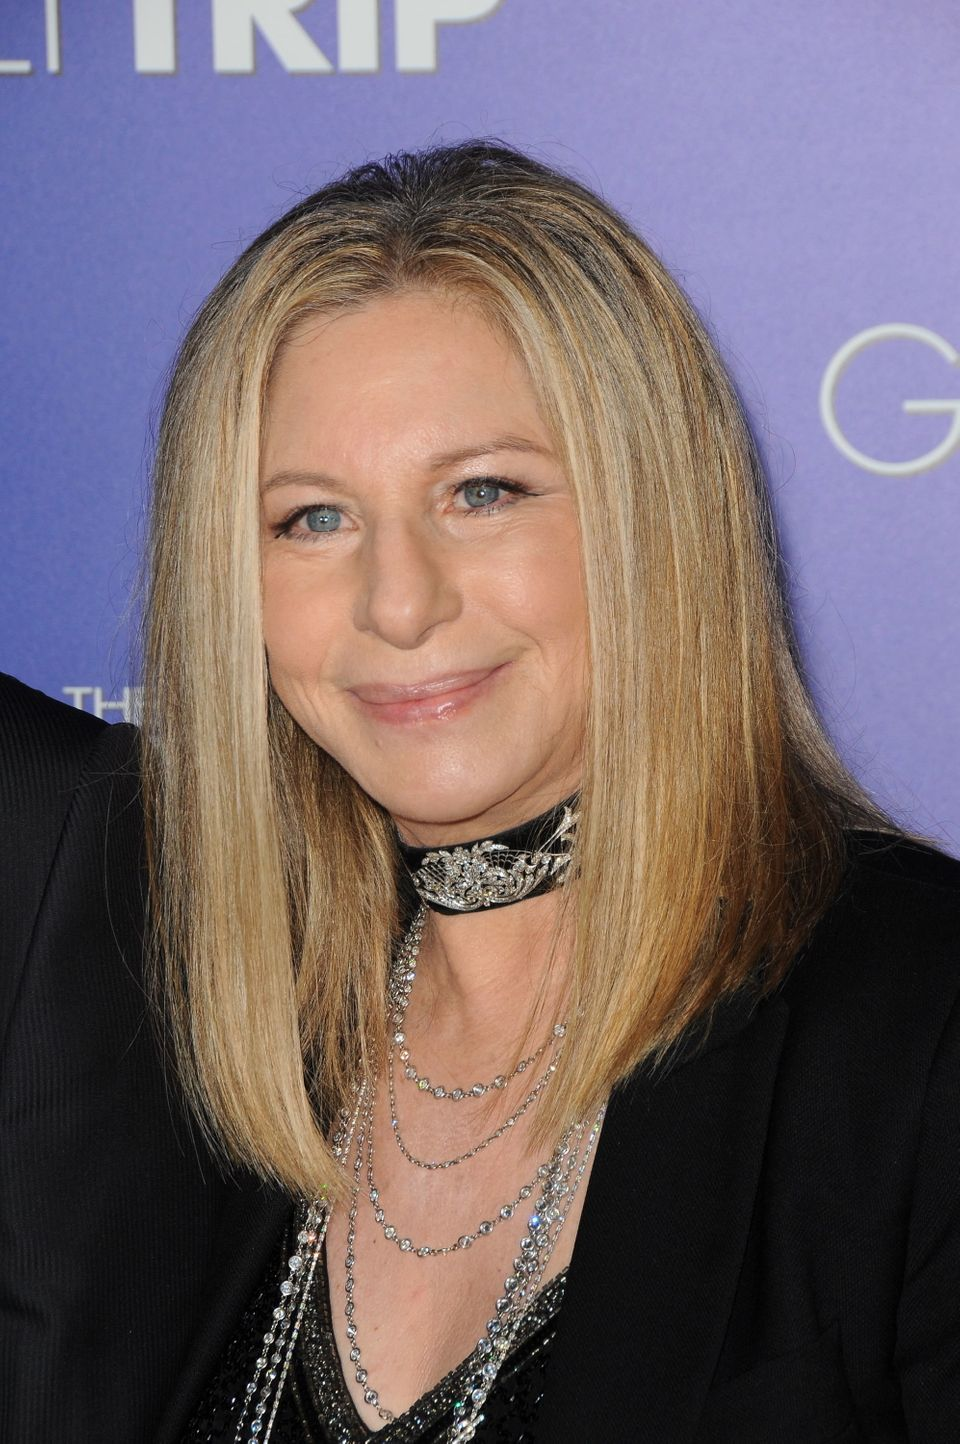 Streisand began using teleprompters in 1976 after forgetting the lyrics to a song during a concert in Central Park. She stopp